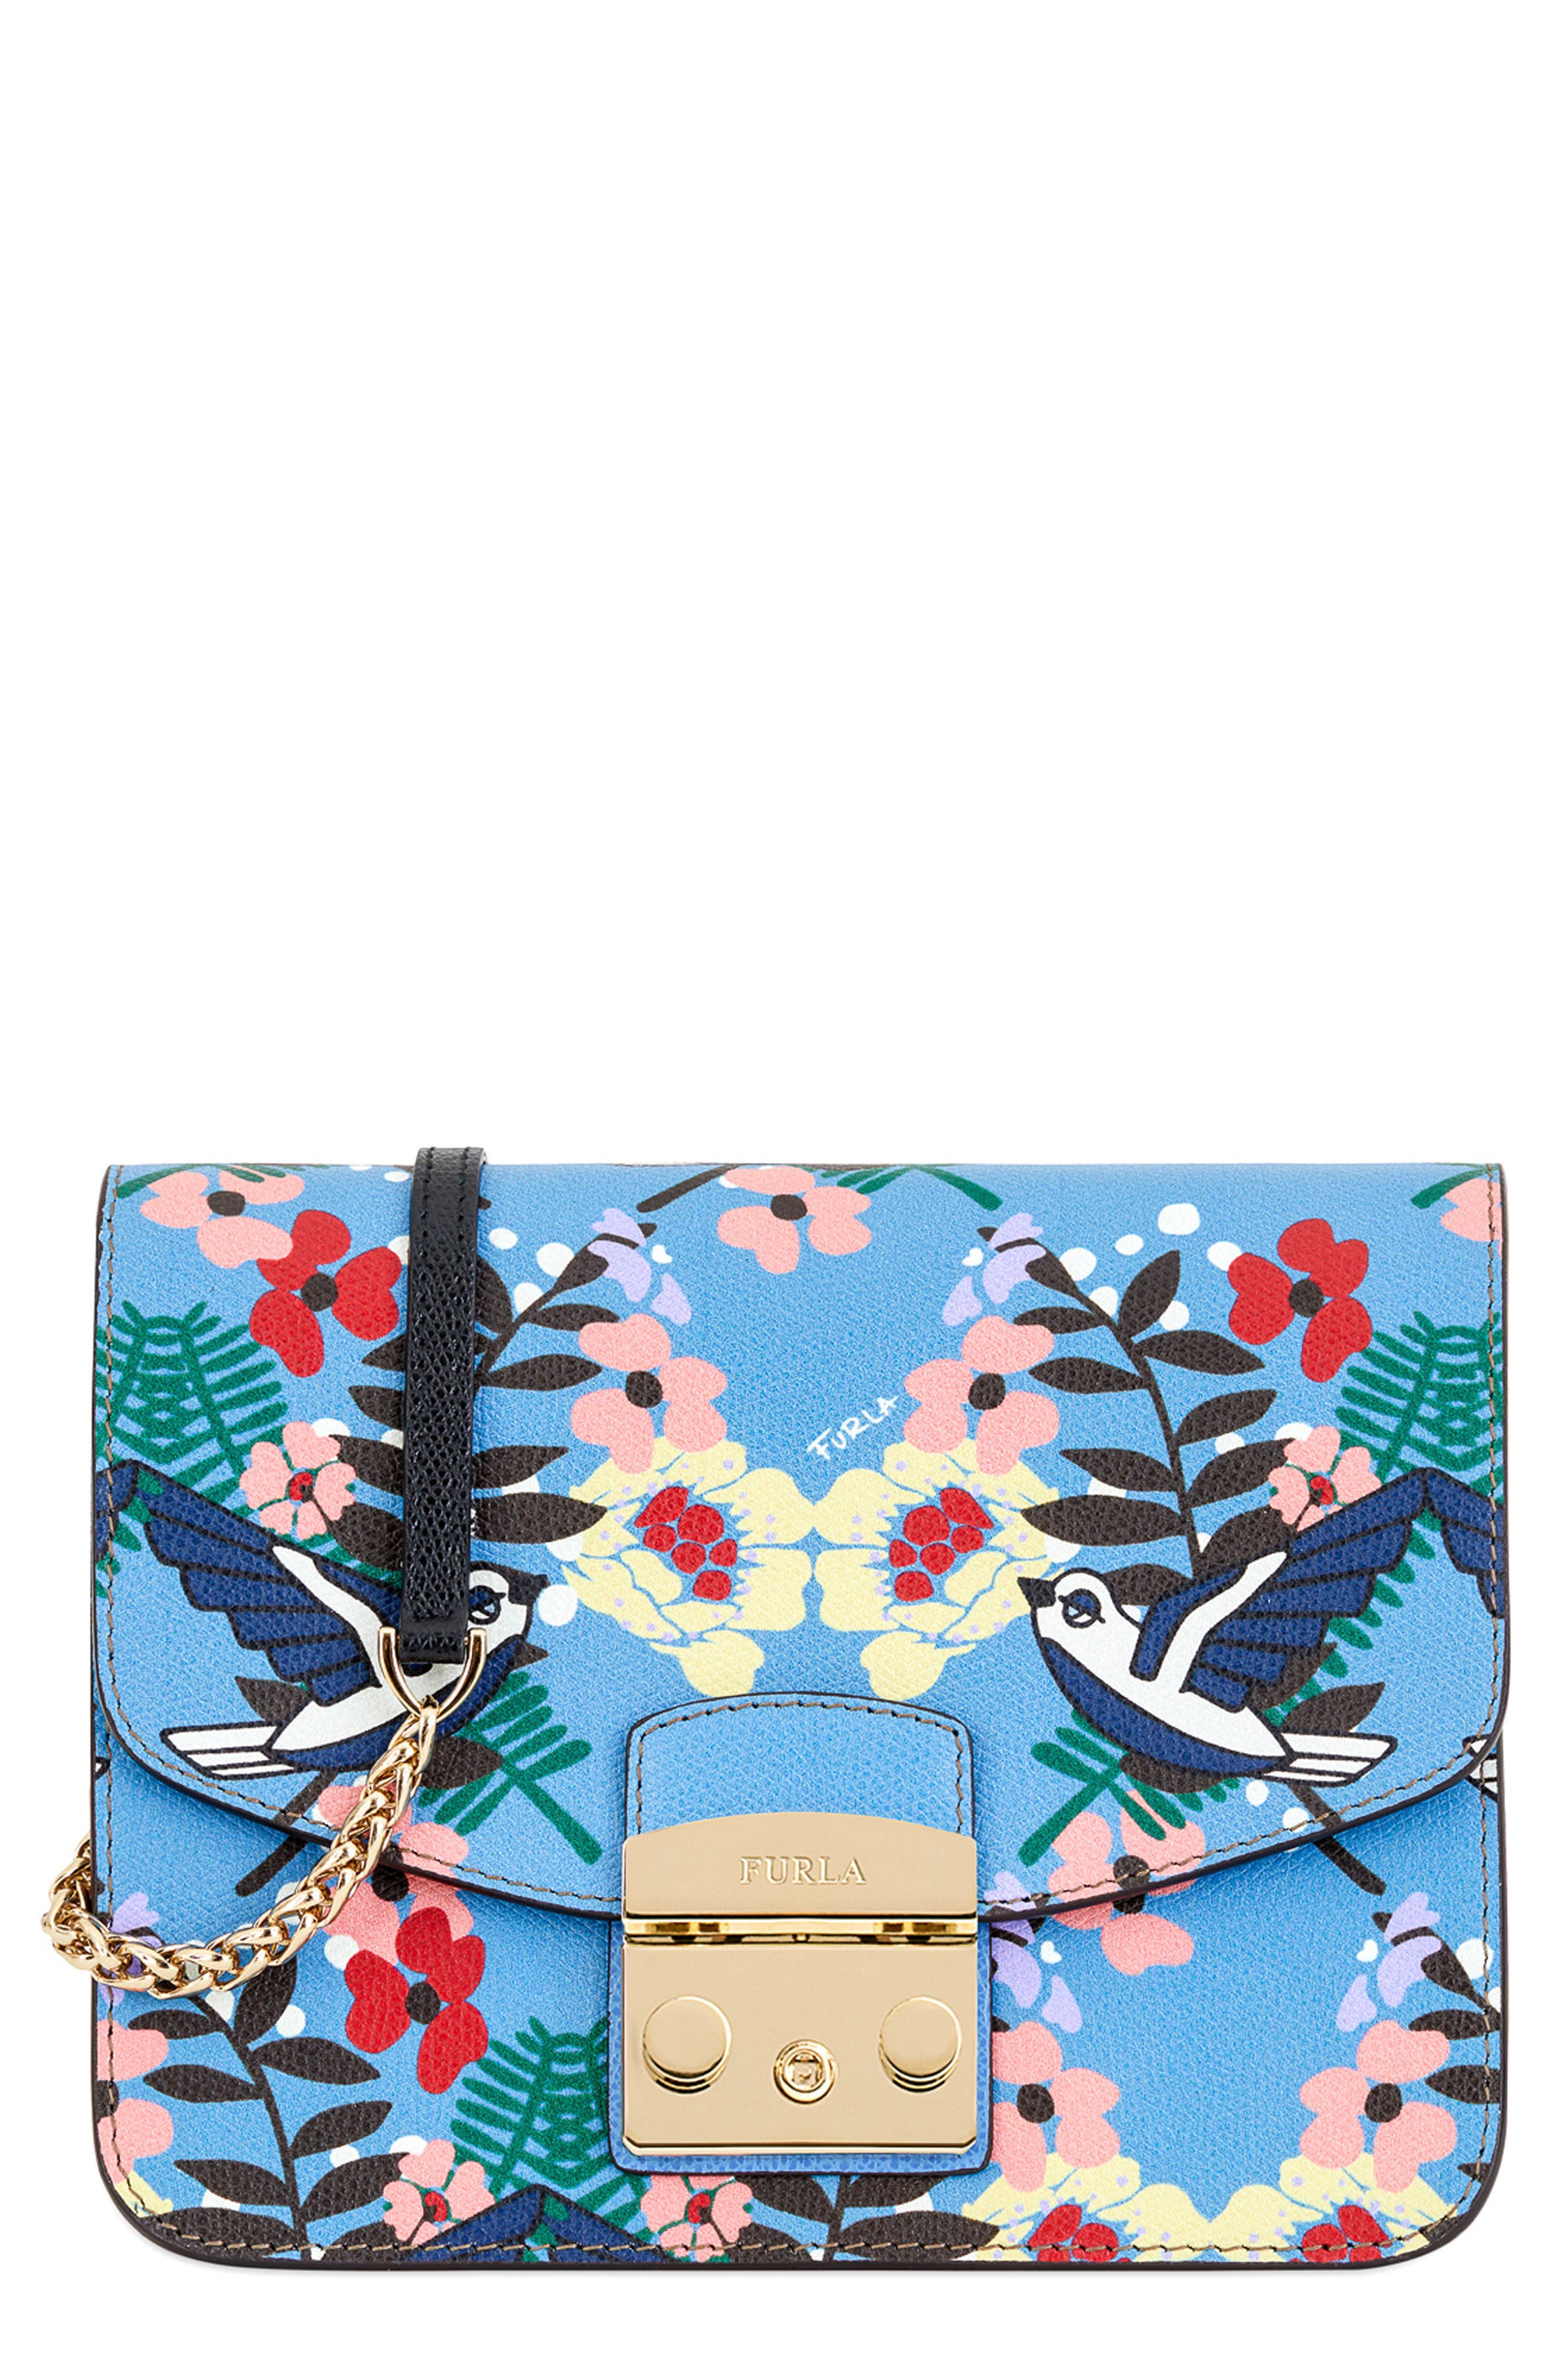 Small Metropolis Print Leather Crossbody Bag,                         Main,                         color, Toni Celeste